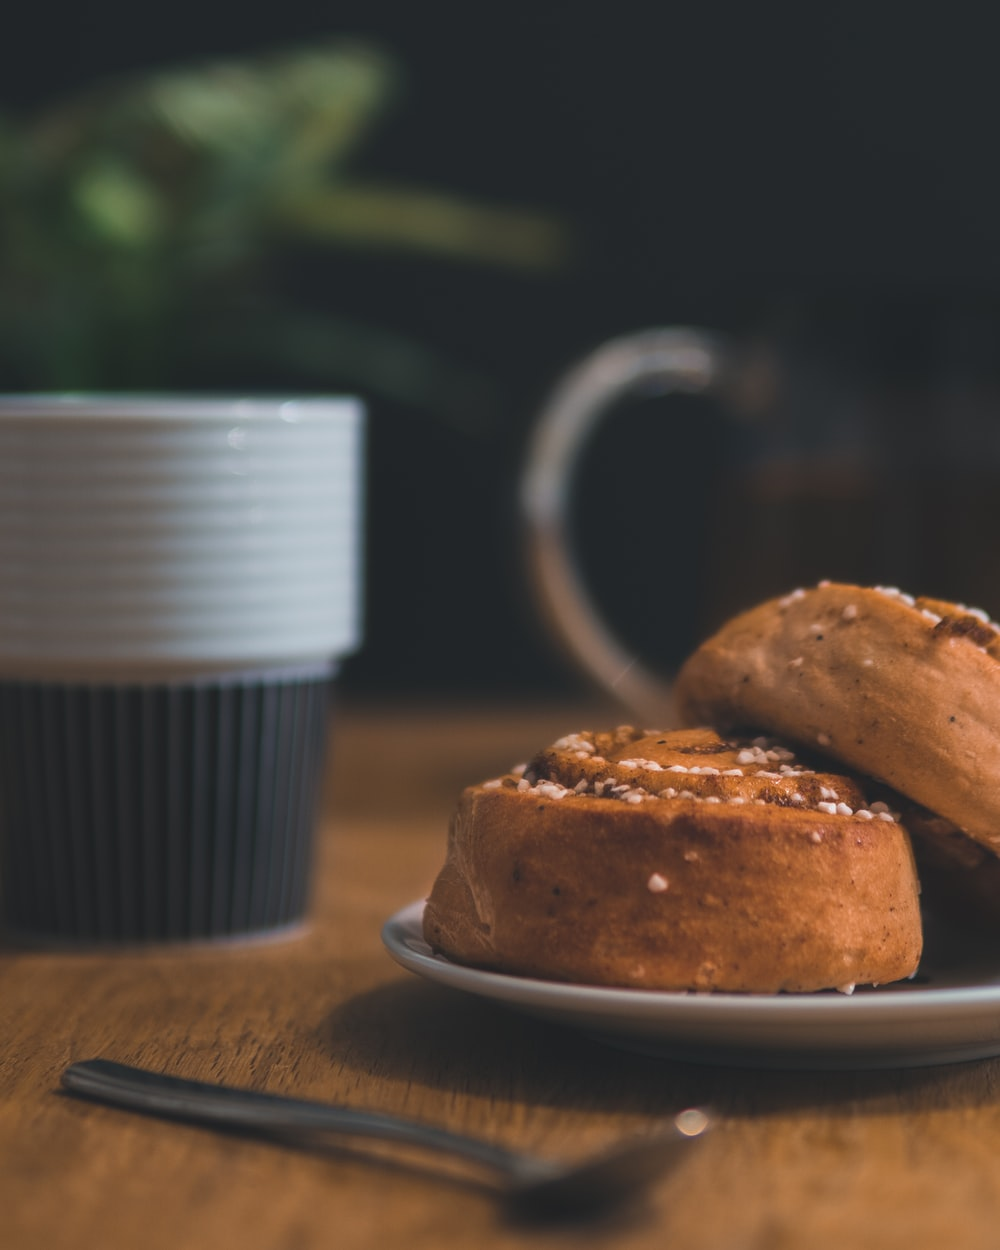 pastry bread with spoon beside and cup